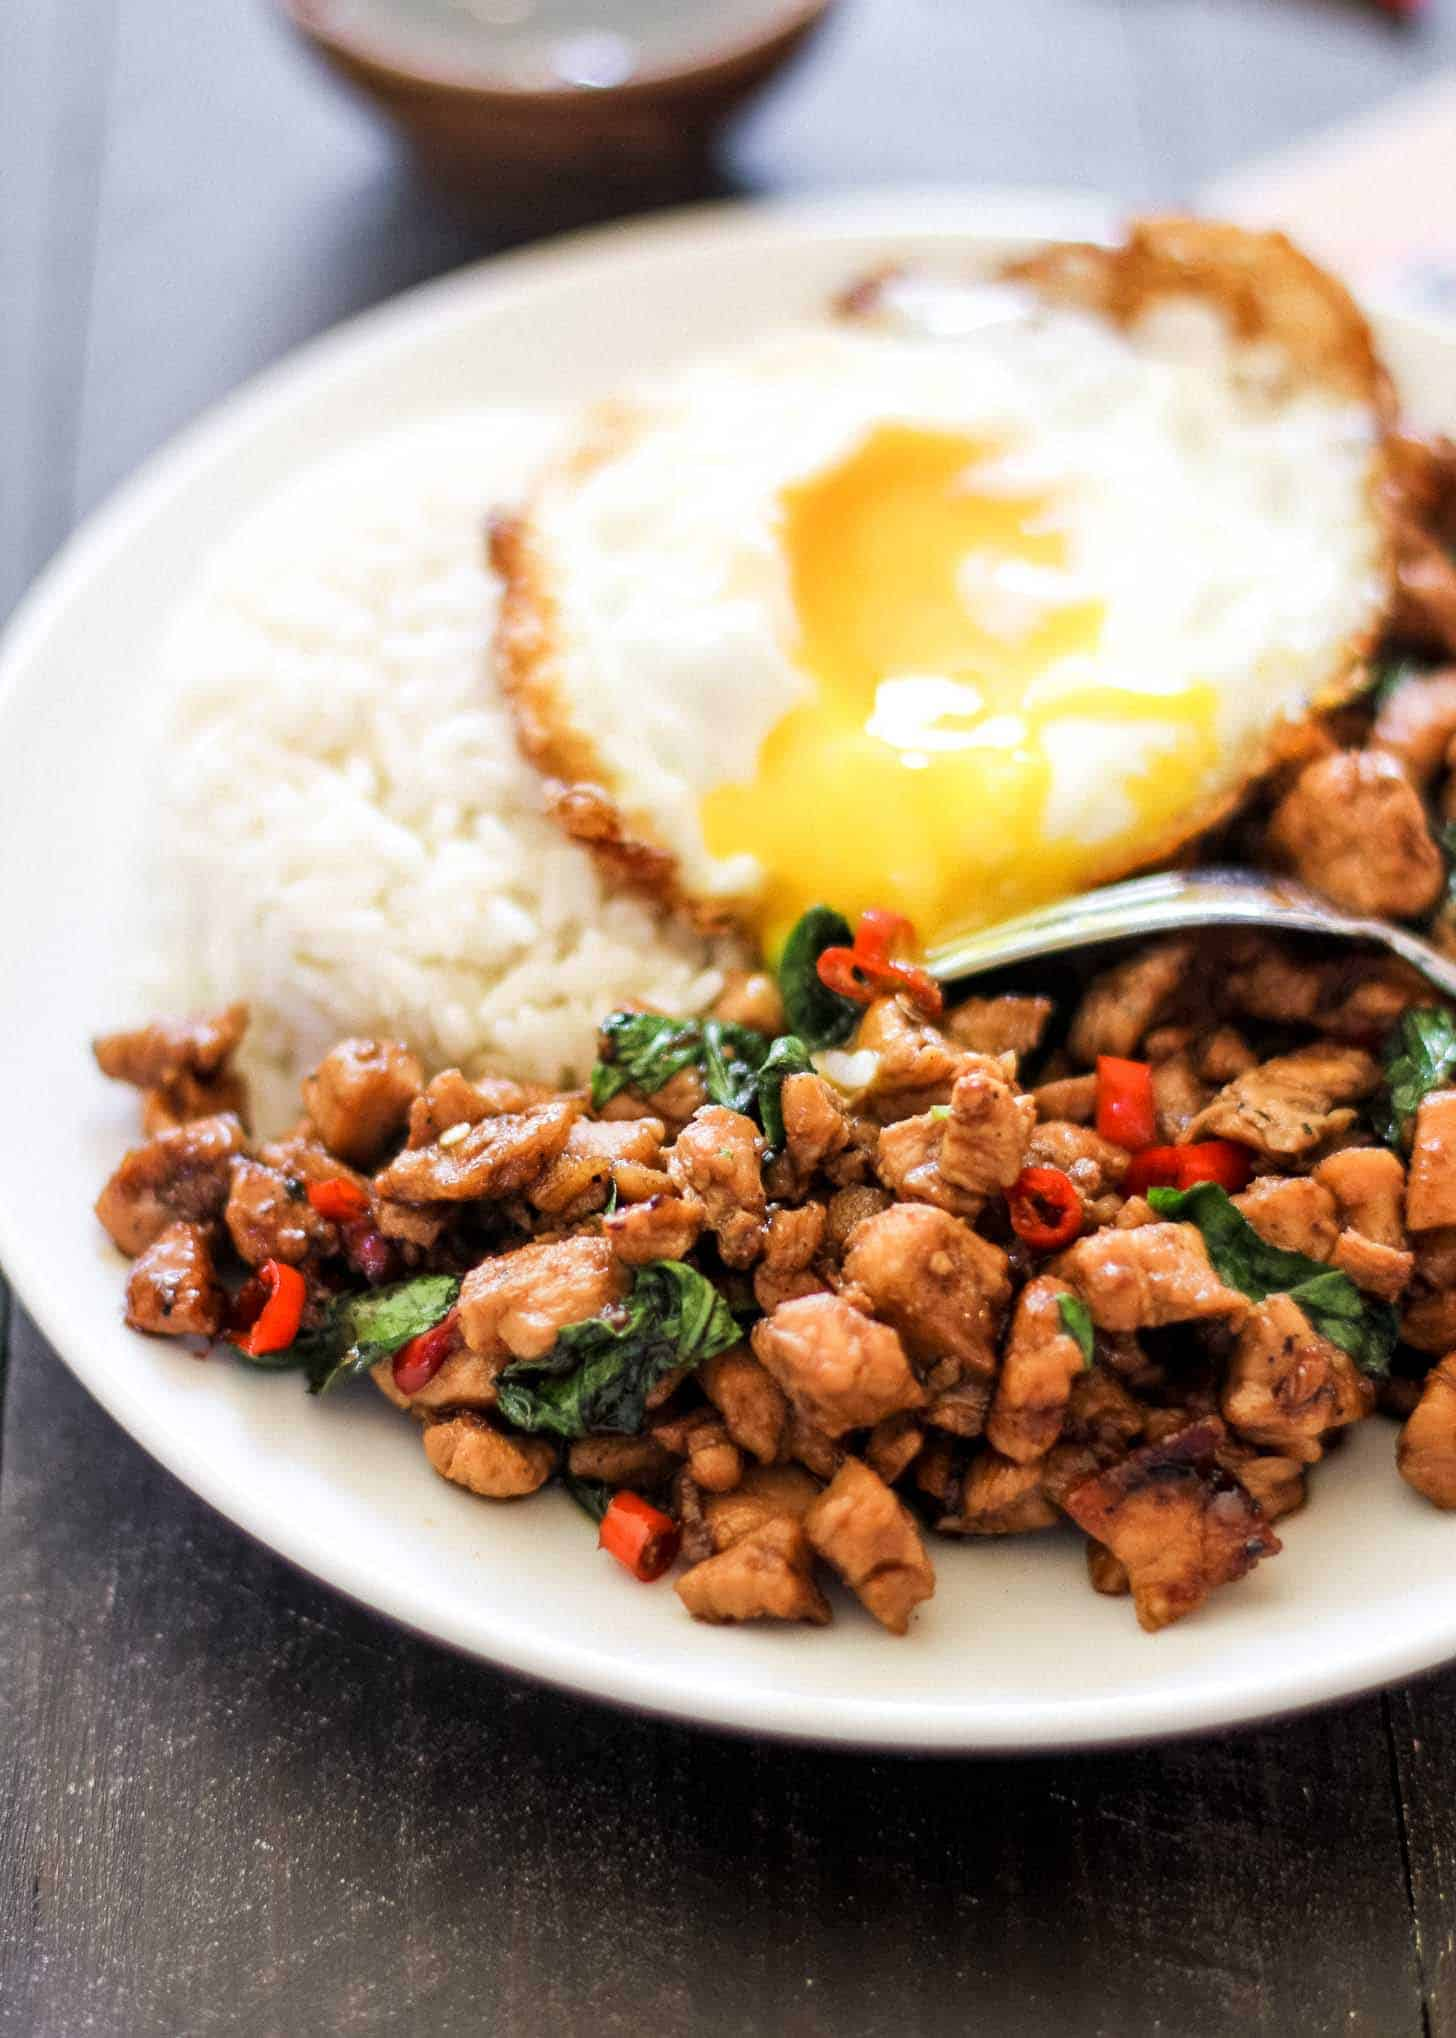 Thai basil chicken with a fried egg on a white plate